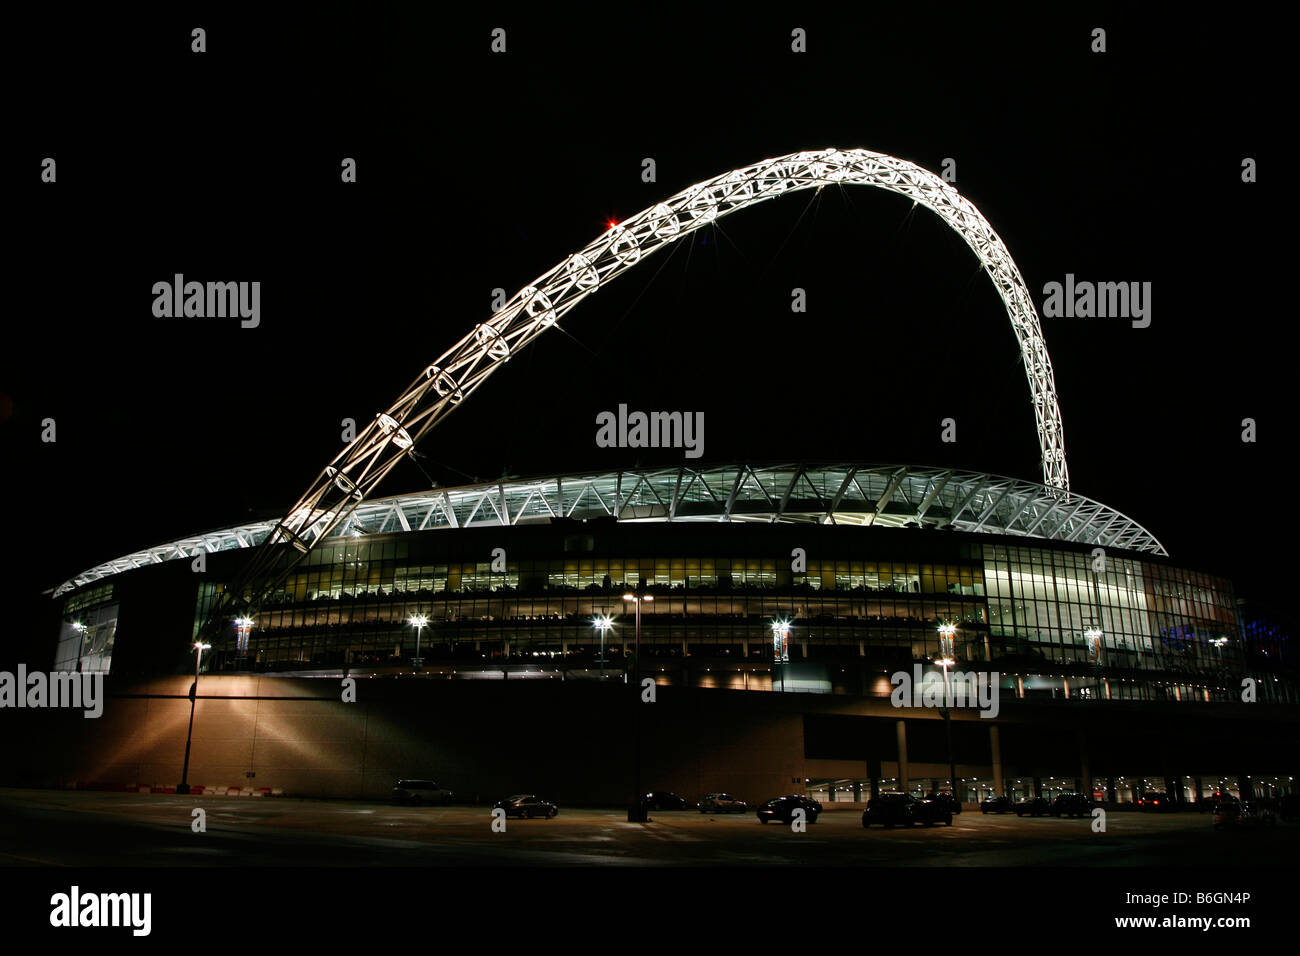 View of the new Wembley Stadium lit up at night - Stock Image